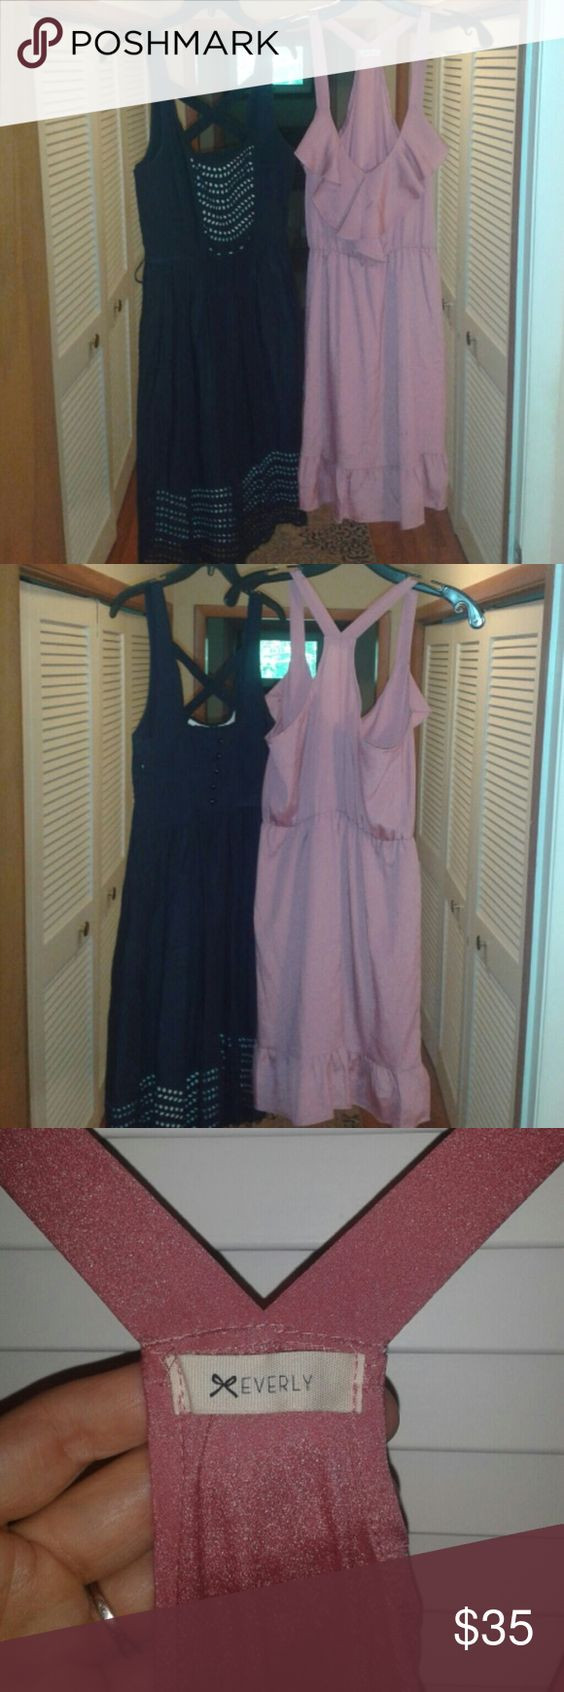 Clearout! 2 for 1!!  Everly and Moulinette soeurs! Beautiful Everly dress in a pink mauve with y strap back, ruffle neckline, ruffle hem and cinched eastic waist.  Would fit size small (4-6) and probably 8. Dress has a couple small marks, barely noticeable... AND a Moulinette Soeurs navy fit and flare dress with criss cross back straps, scoop neck, side zip closure, fully lined, and cutout details through top and hemline! does ot come with belt.  Has loops but can be removed. Size 4…